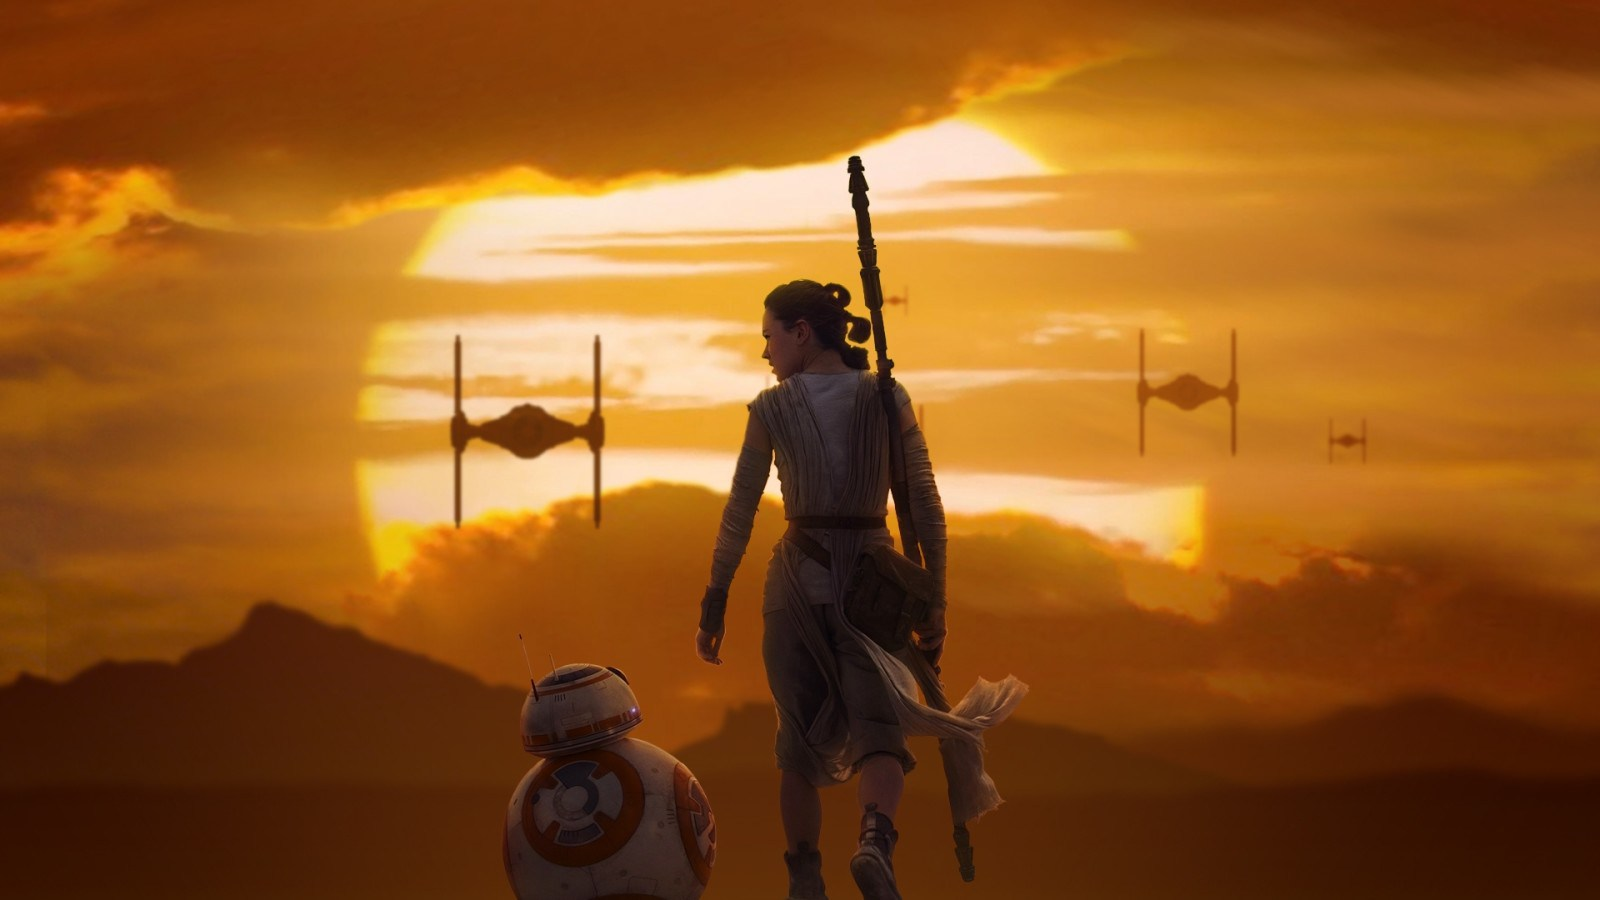 May The 4th Be With You 2016 Happy Star Wars Days Images And Greetings From Around The World Player One